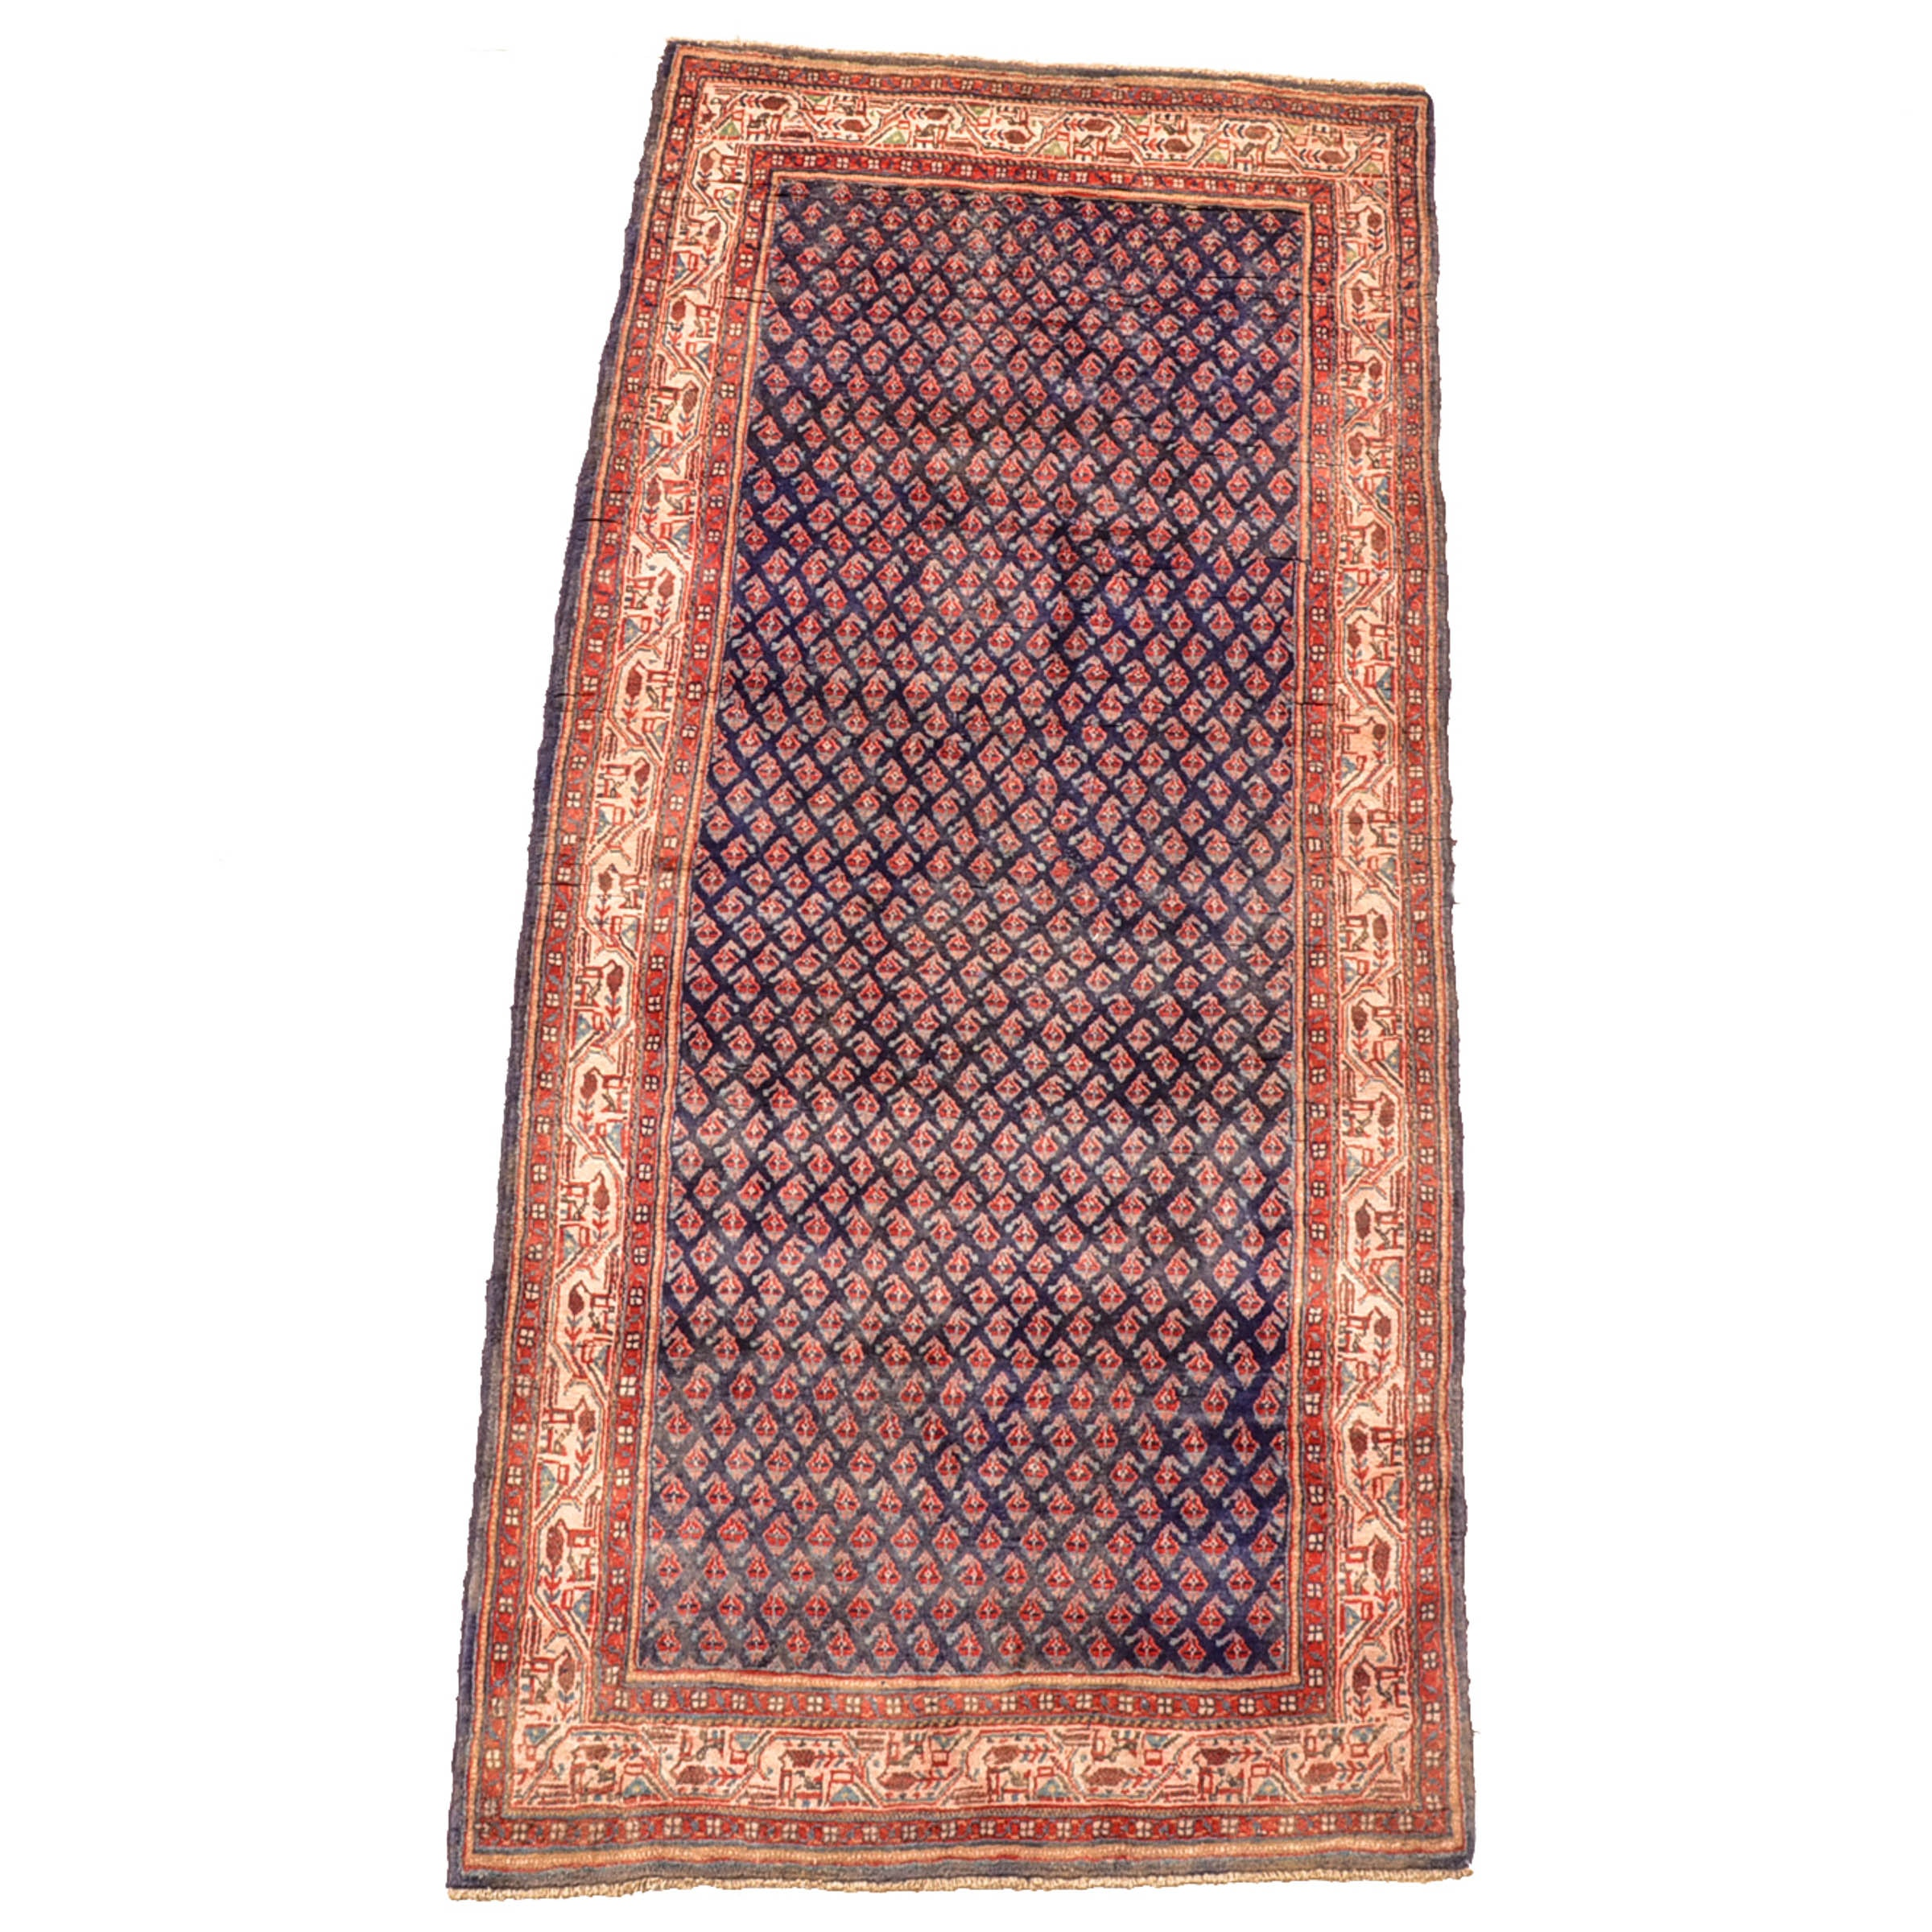 Vintage Hand-Knotted Persian Mir-A-Boteh Area Rug